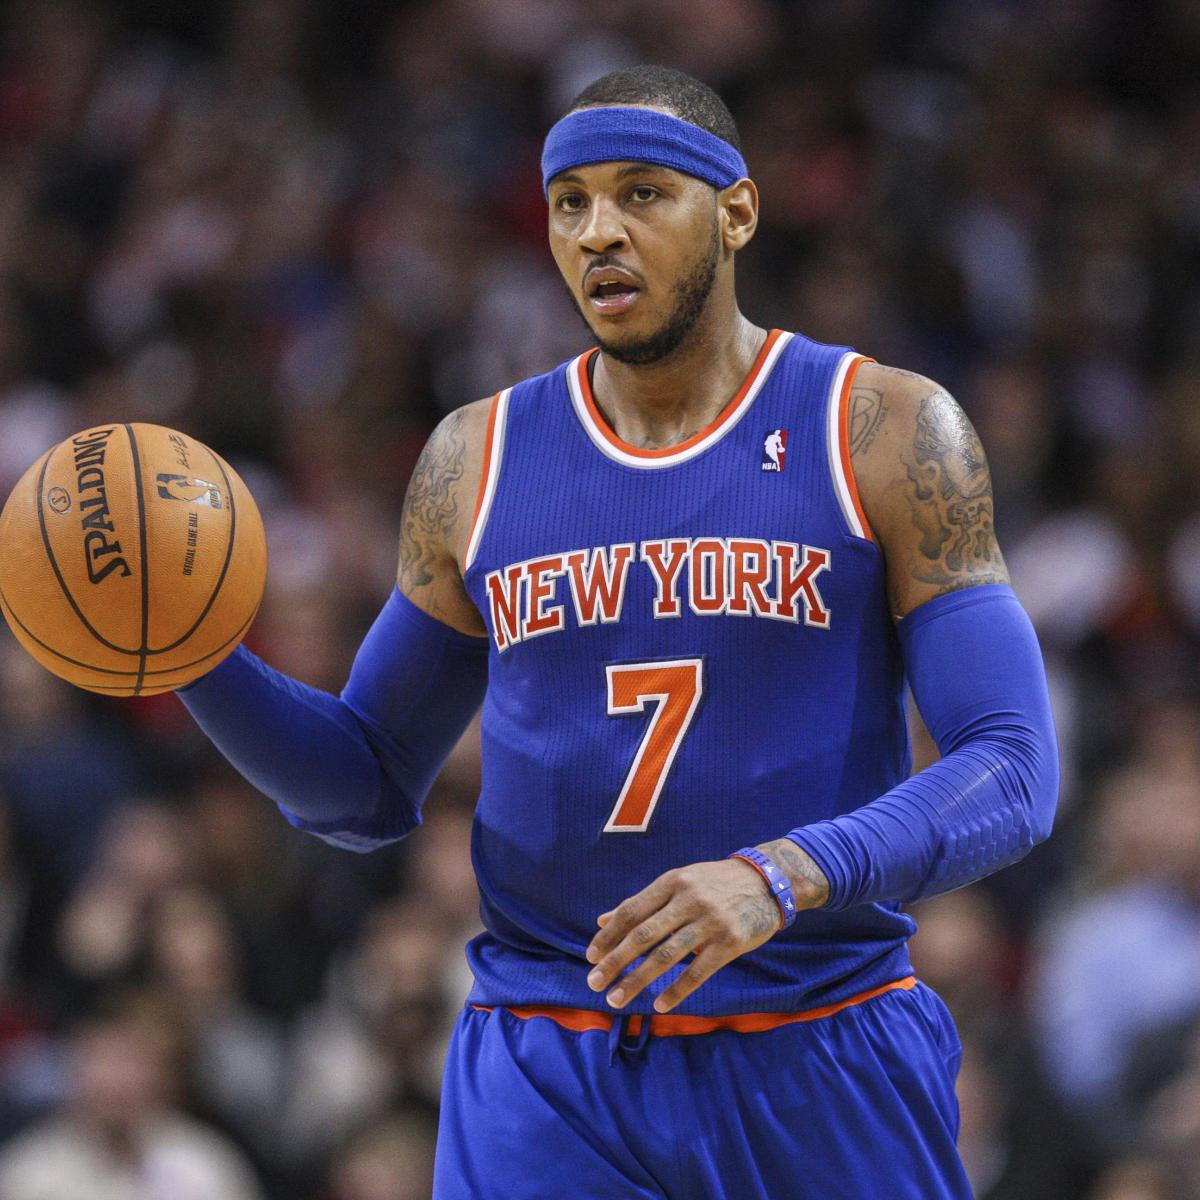 5 NBA Teams That Would Be Best Potential Fits For Carmelo